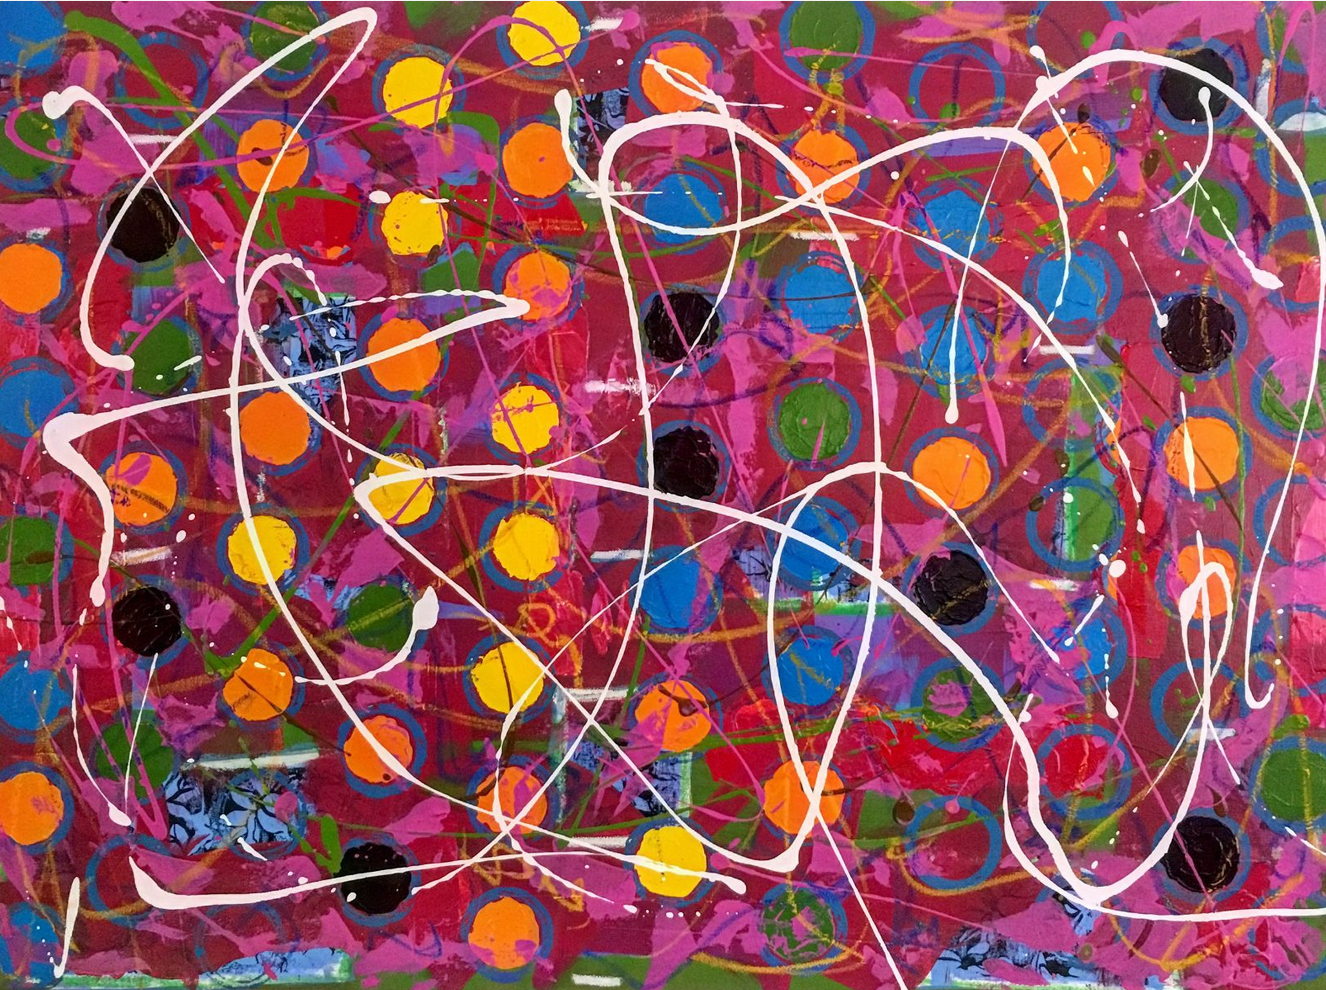 Hey Baby Whoa Baby Pretty Baby artwork by Mary Lonergan - art listed for sale on Artplode